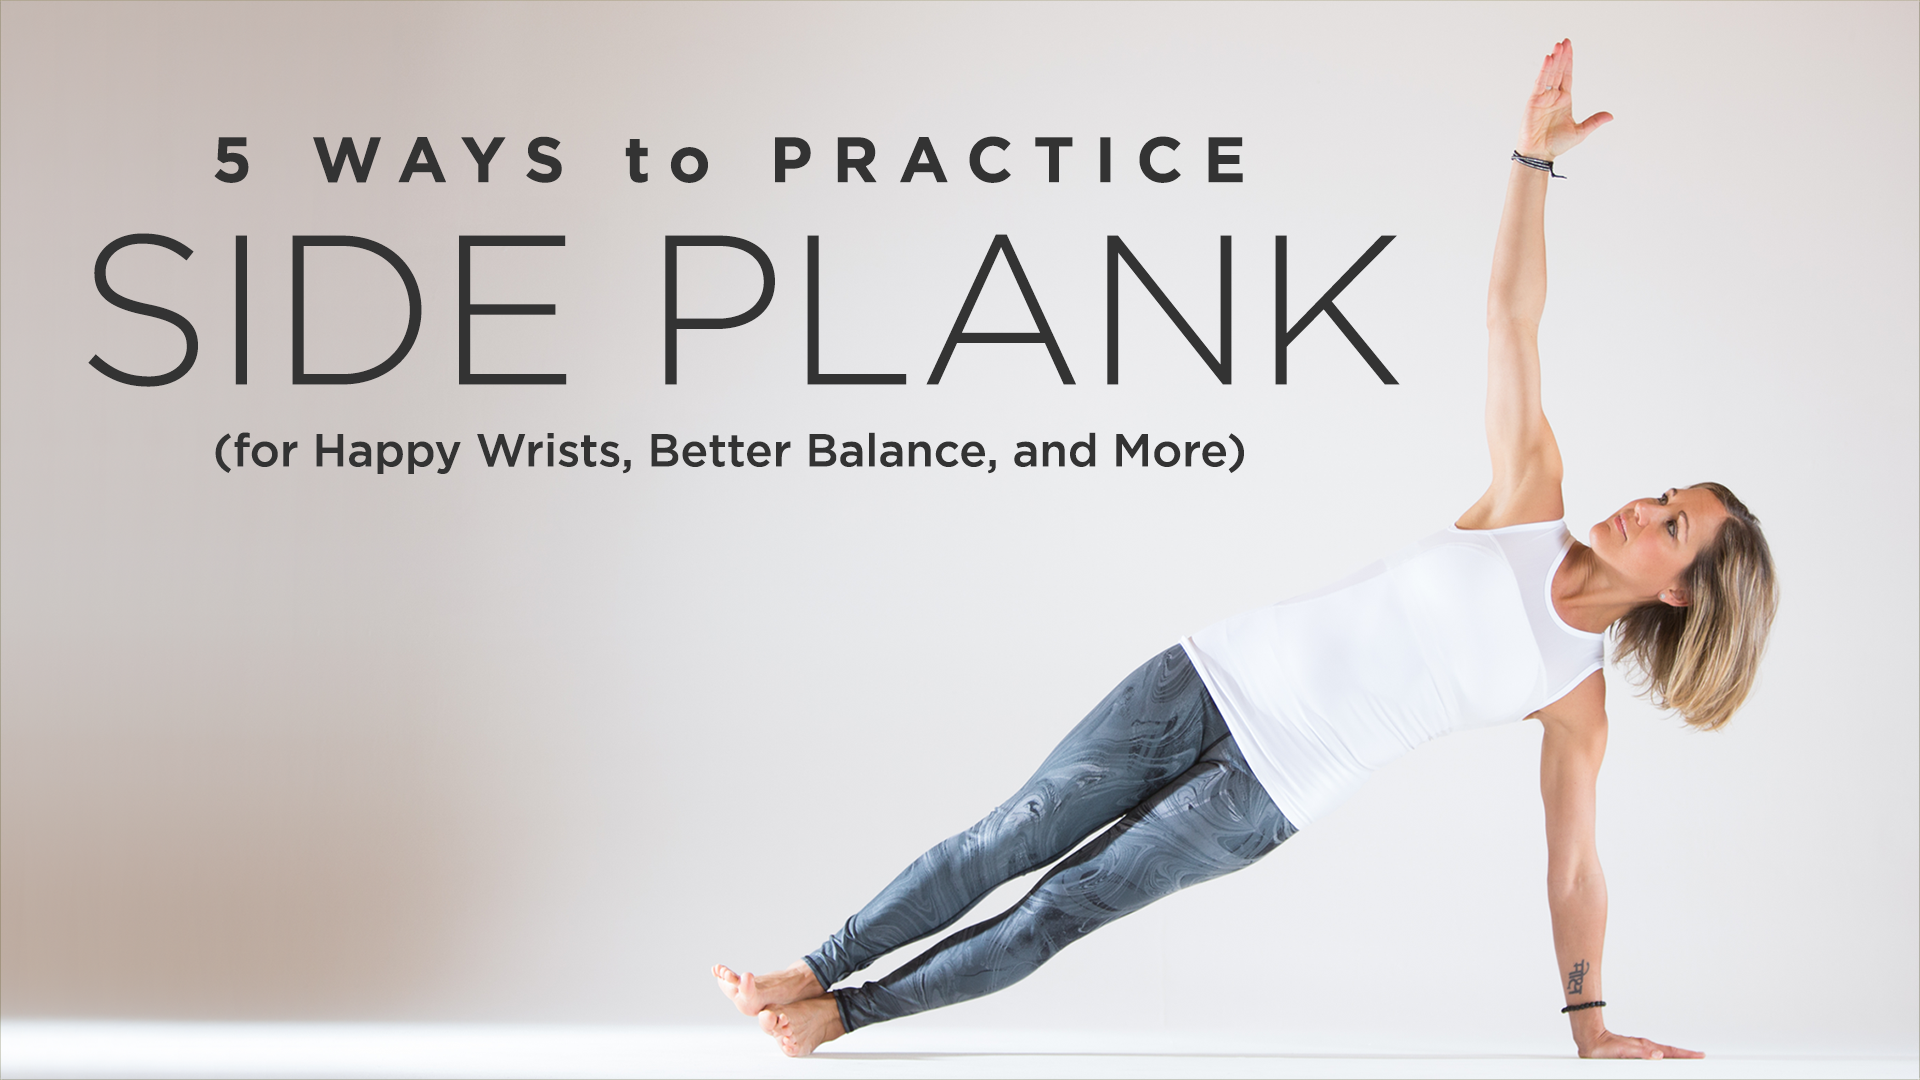 Free Talk On Mindfulness Practice For >> 5 Ways to Practice Side Plank | Yoga International